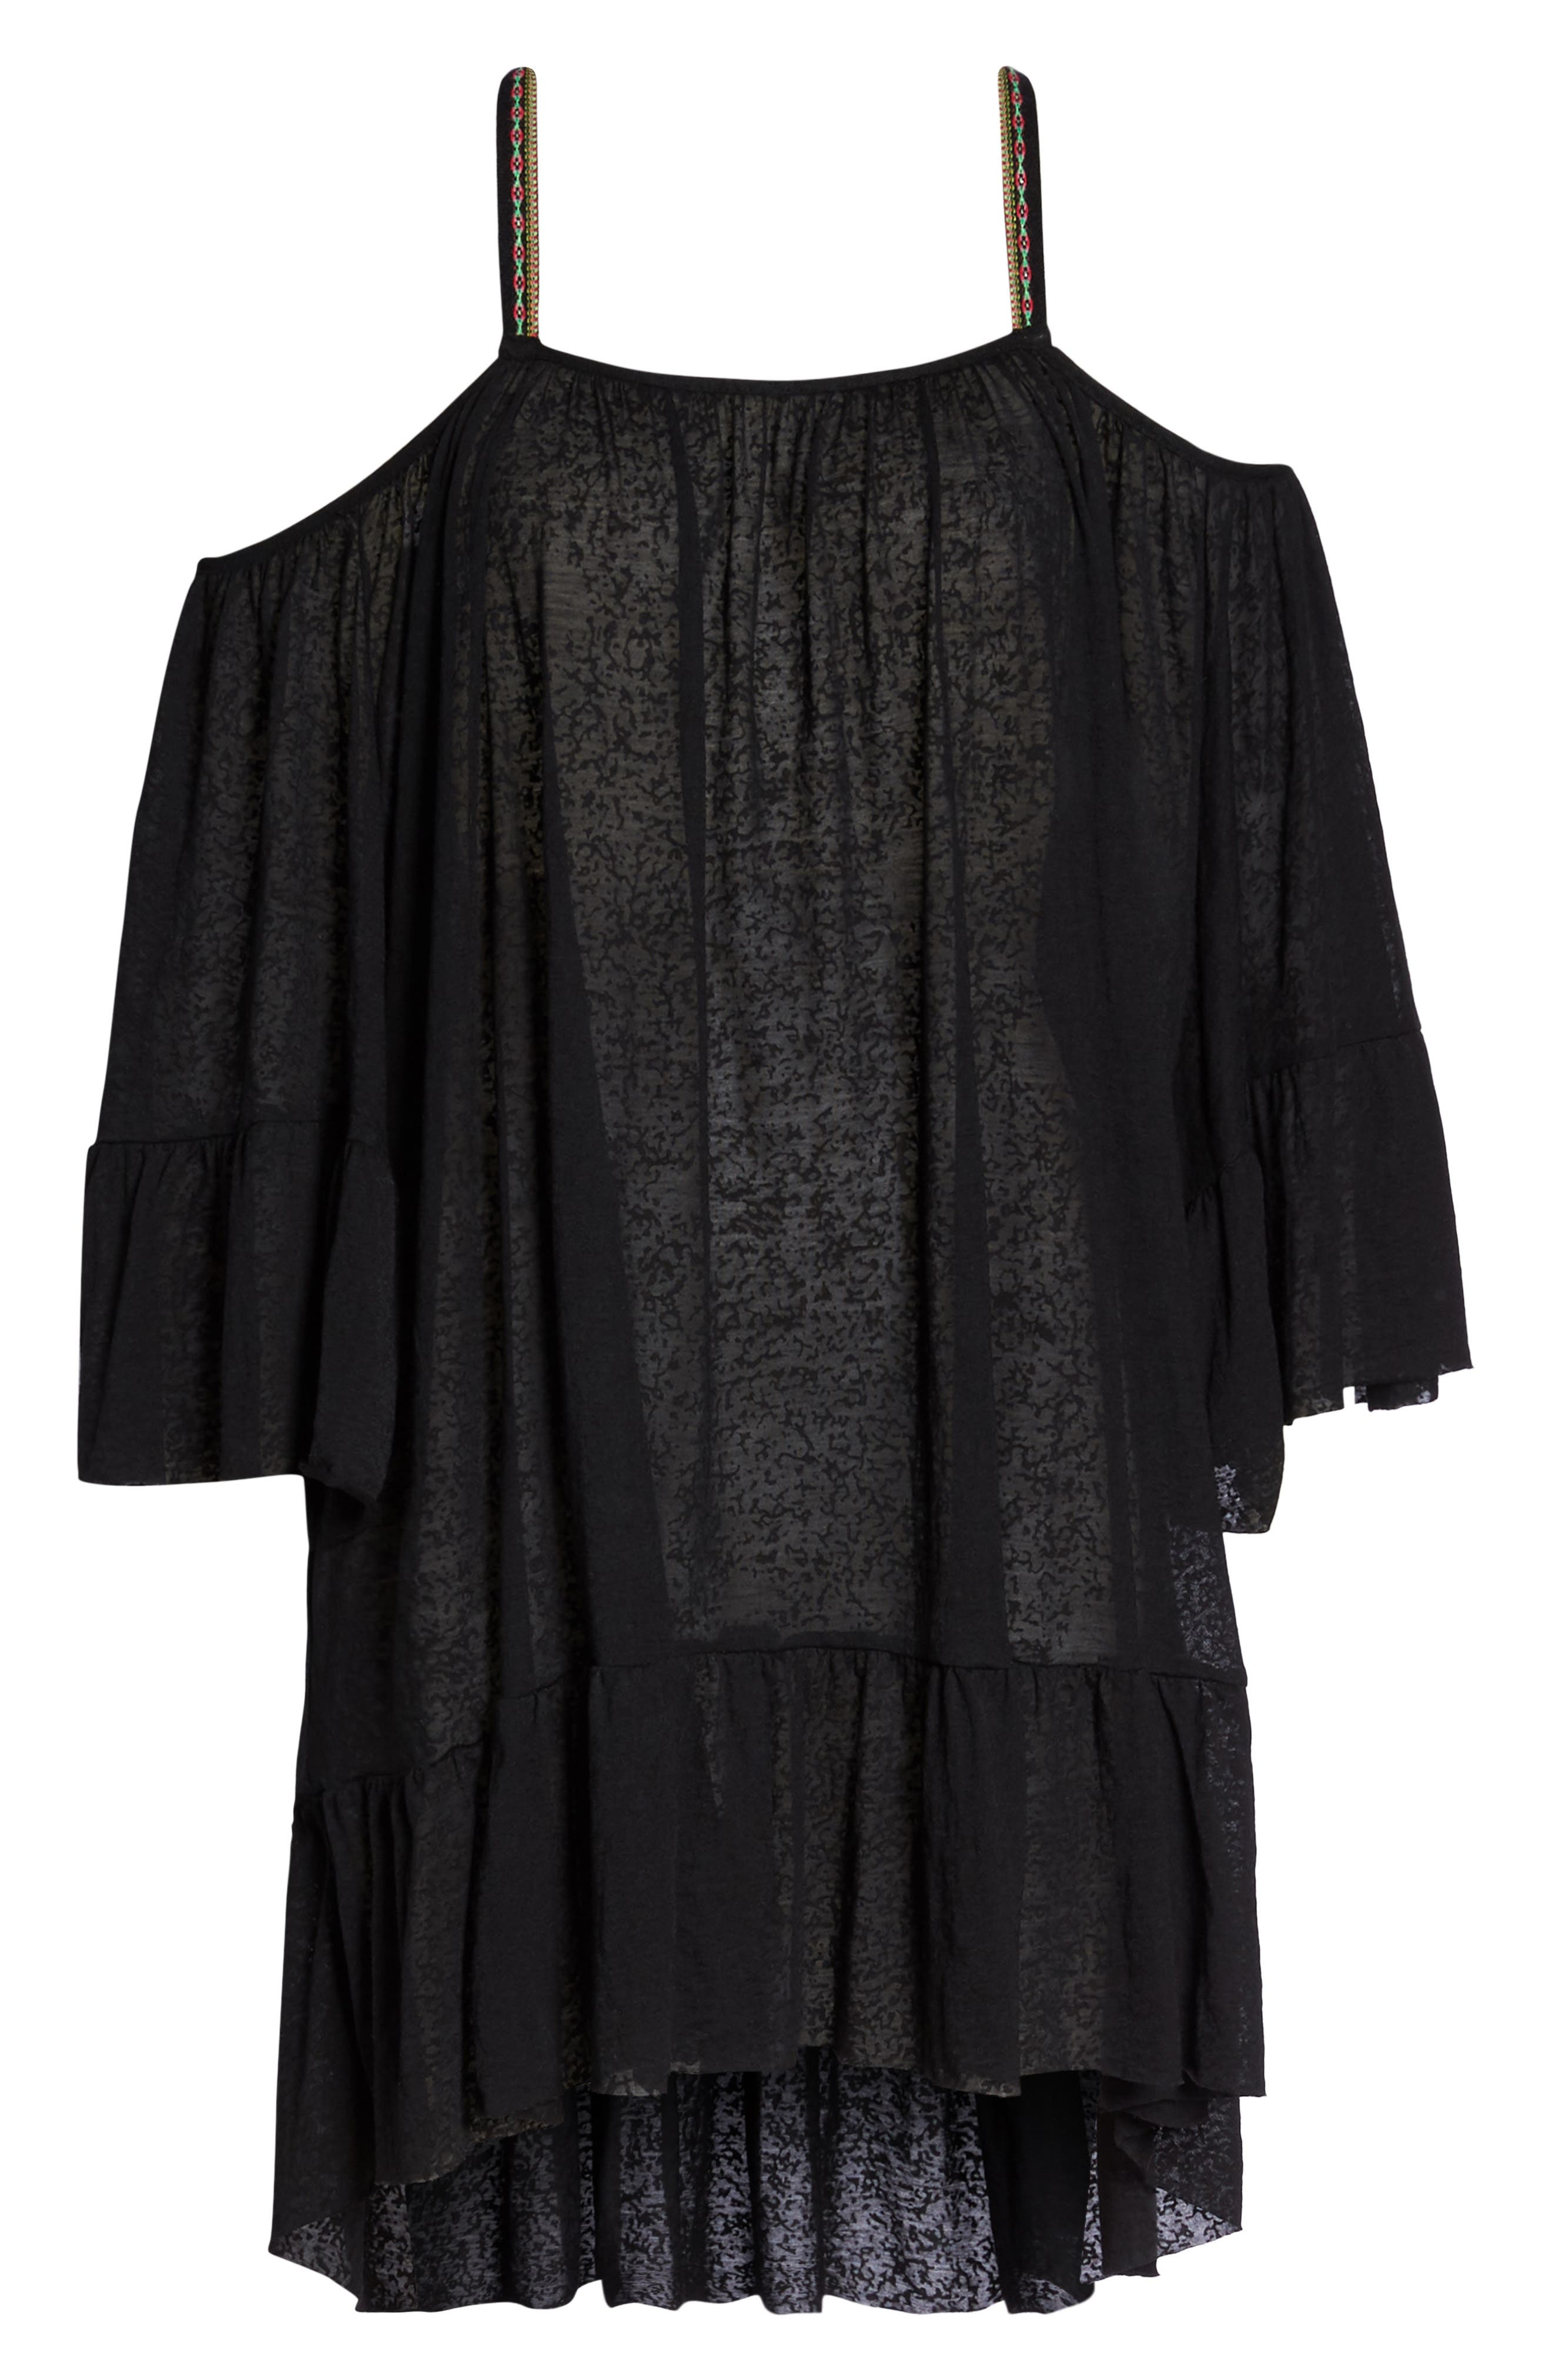 Dancing Cover-Up Dress,                             Alternate thumbnail 6, color,                             Black